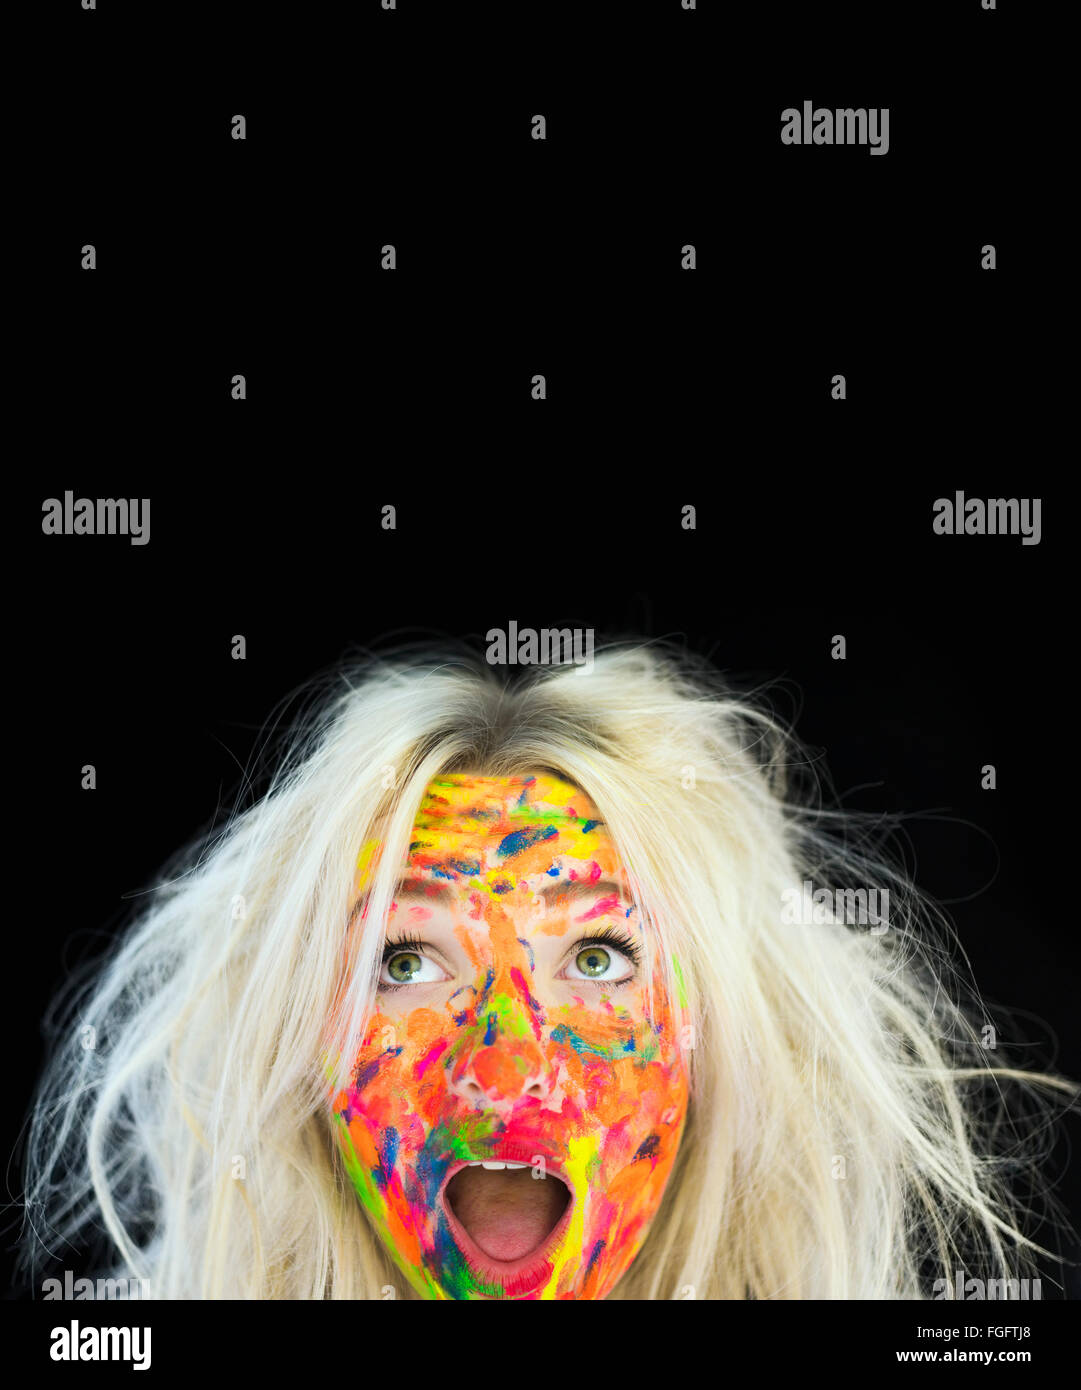 Woman with messy blonde hair and face covered in multi coloured paint with a surprised expression - Stock Image